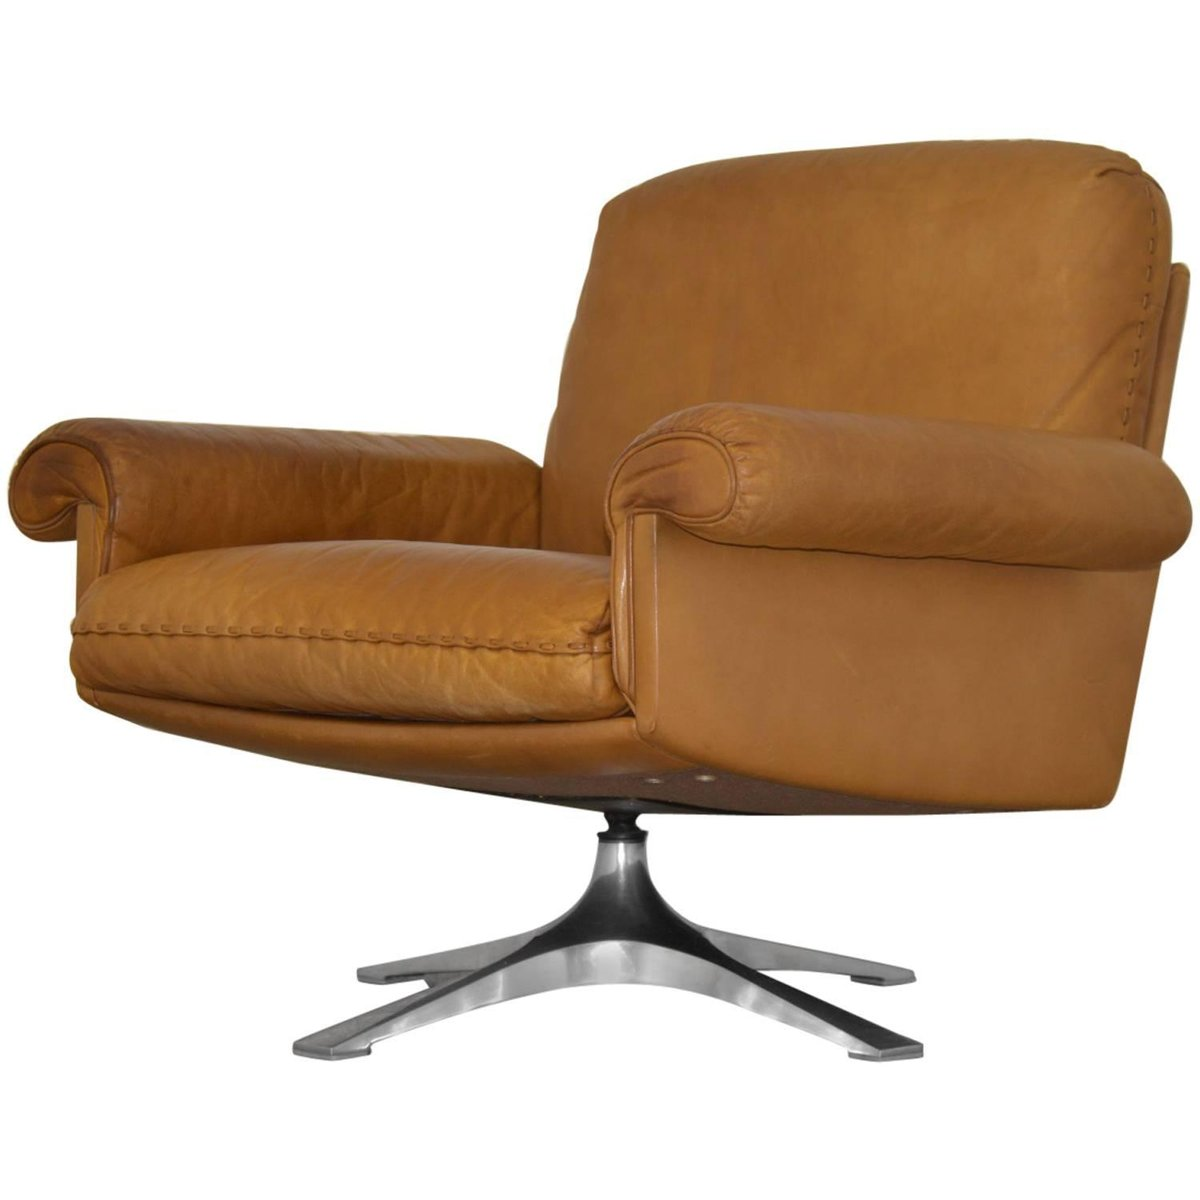 Swiss Vintage Ds 31 Swivel Lounge Armchair From De Sede